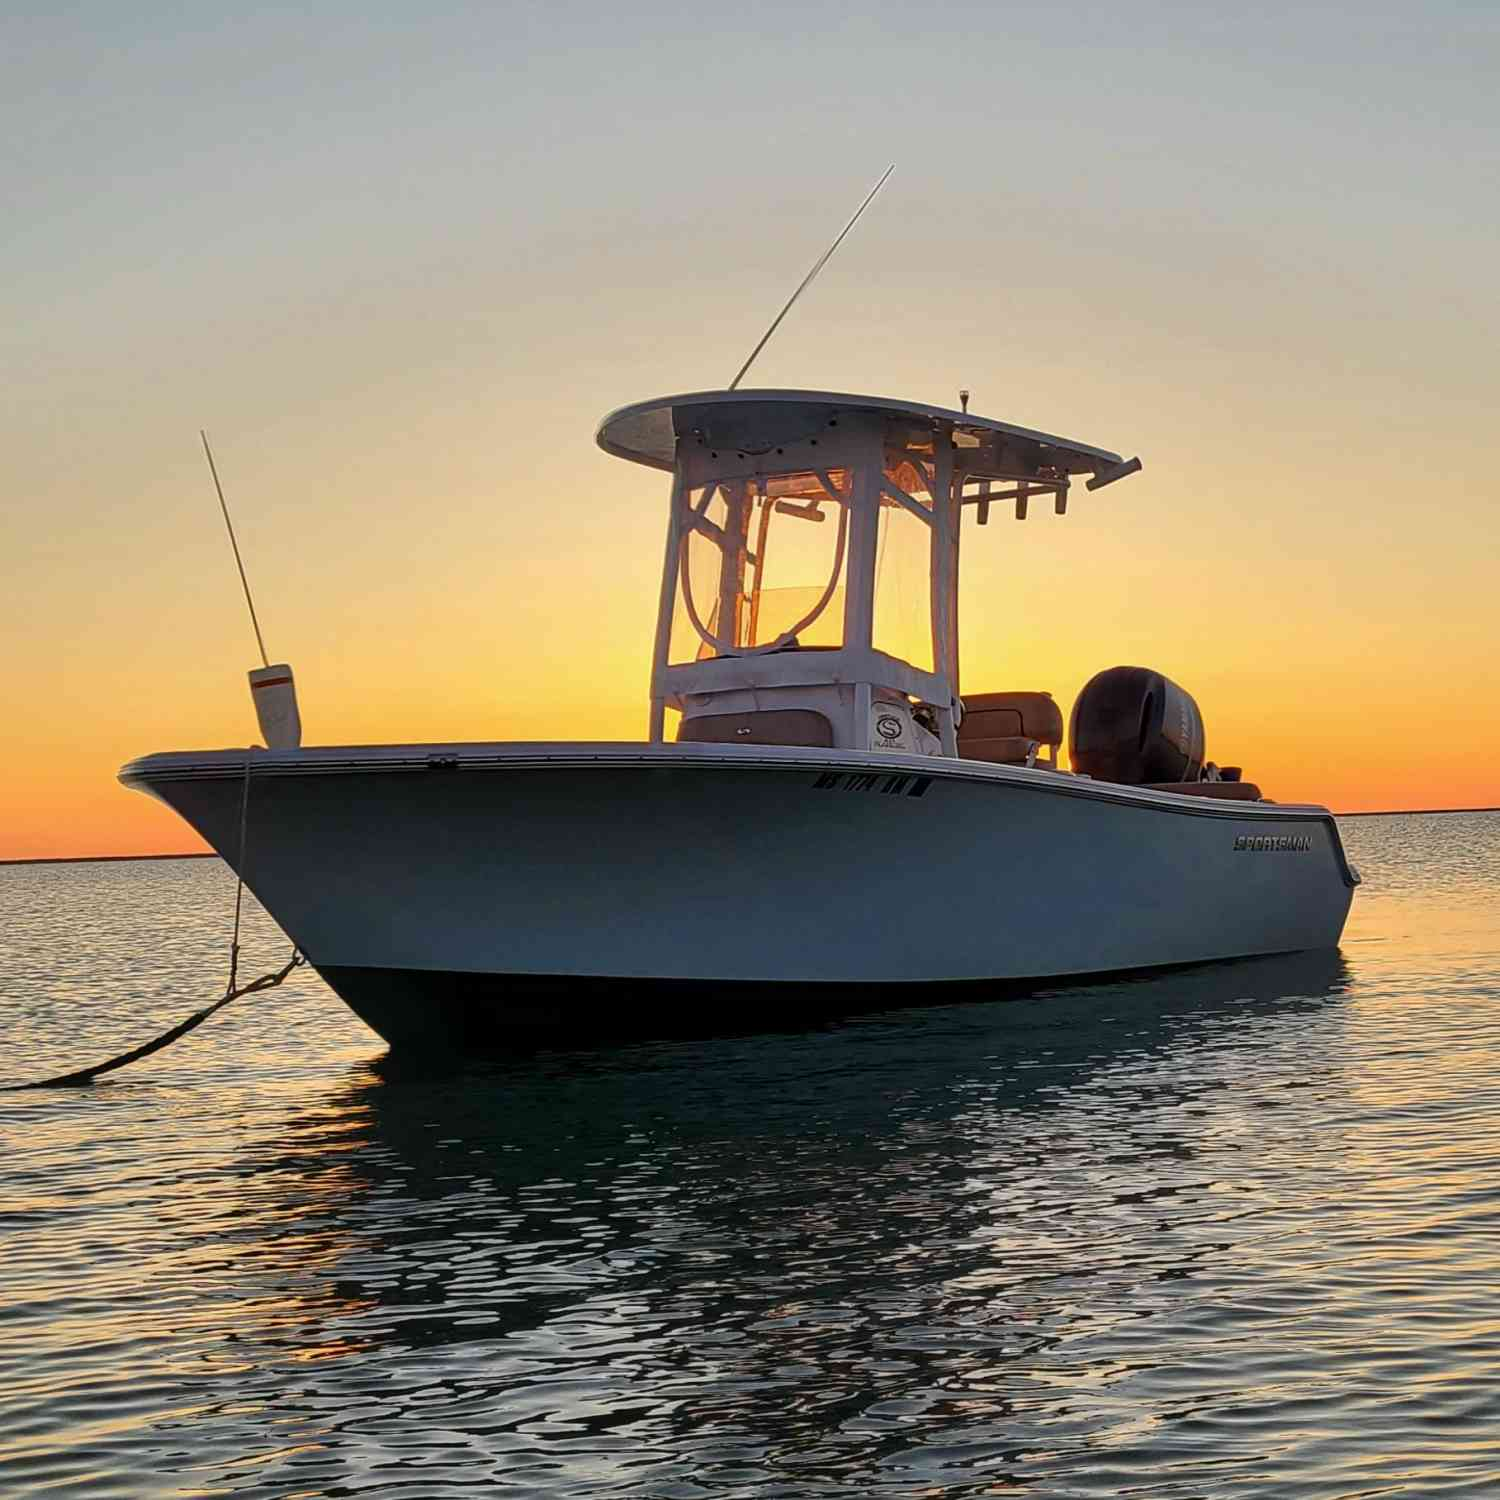 Title: Early Morning Arrival - On board their Sportsman Heritage 211 Center Console - Location: Duxbury, MA. Participating in the Photo Contest #SportsmanMay2020